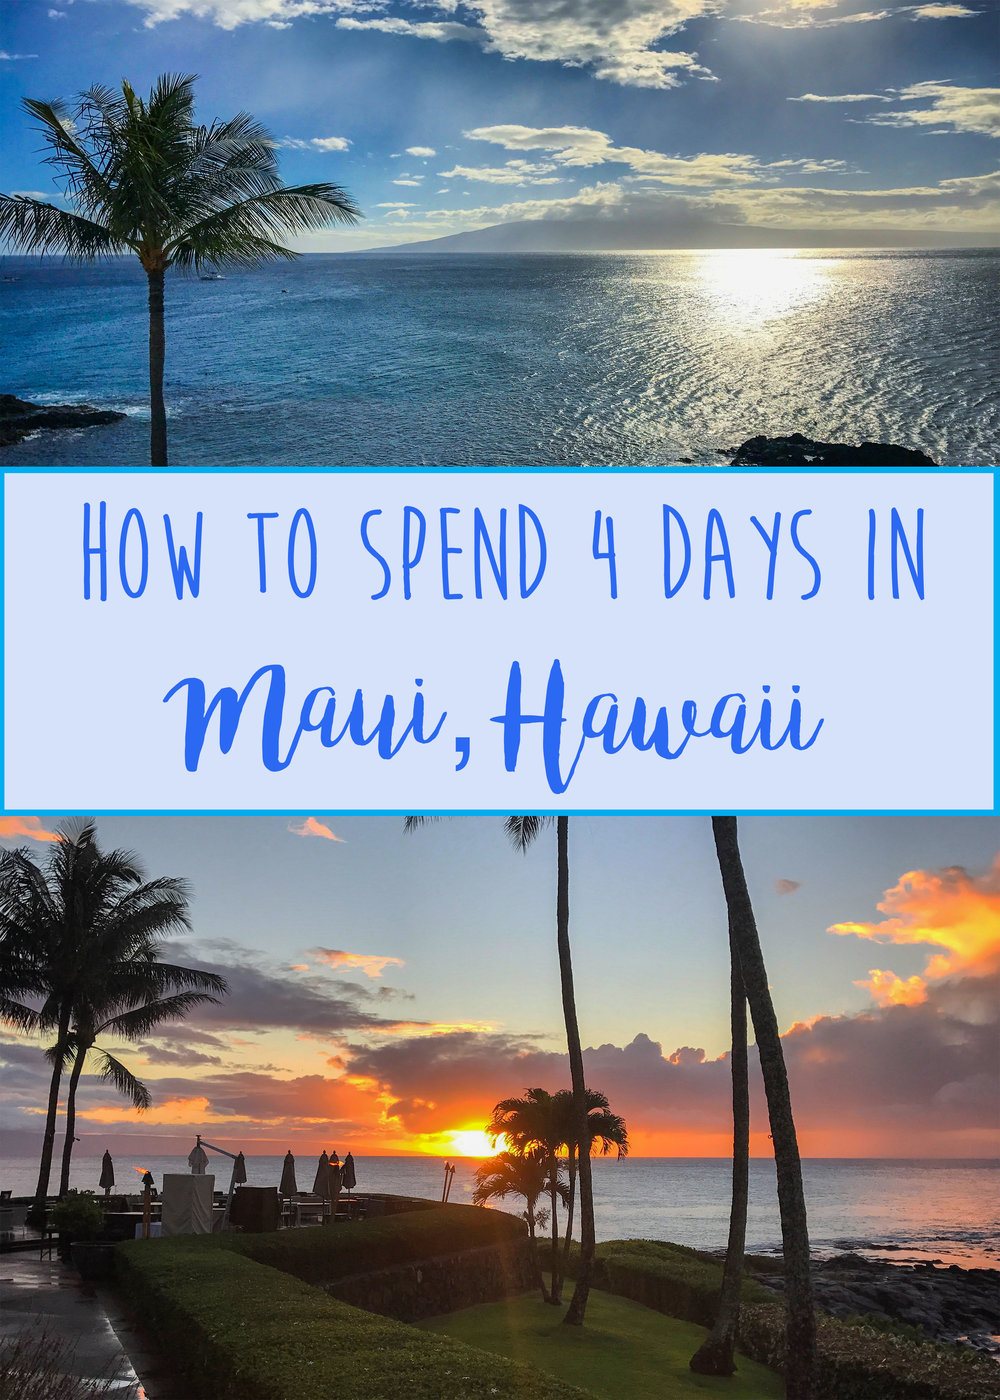 4 Day Itinerary Maui, Hawaii - Wandering Jokas Travel & Ice Cream Blog